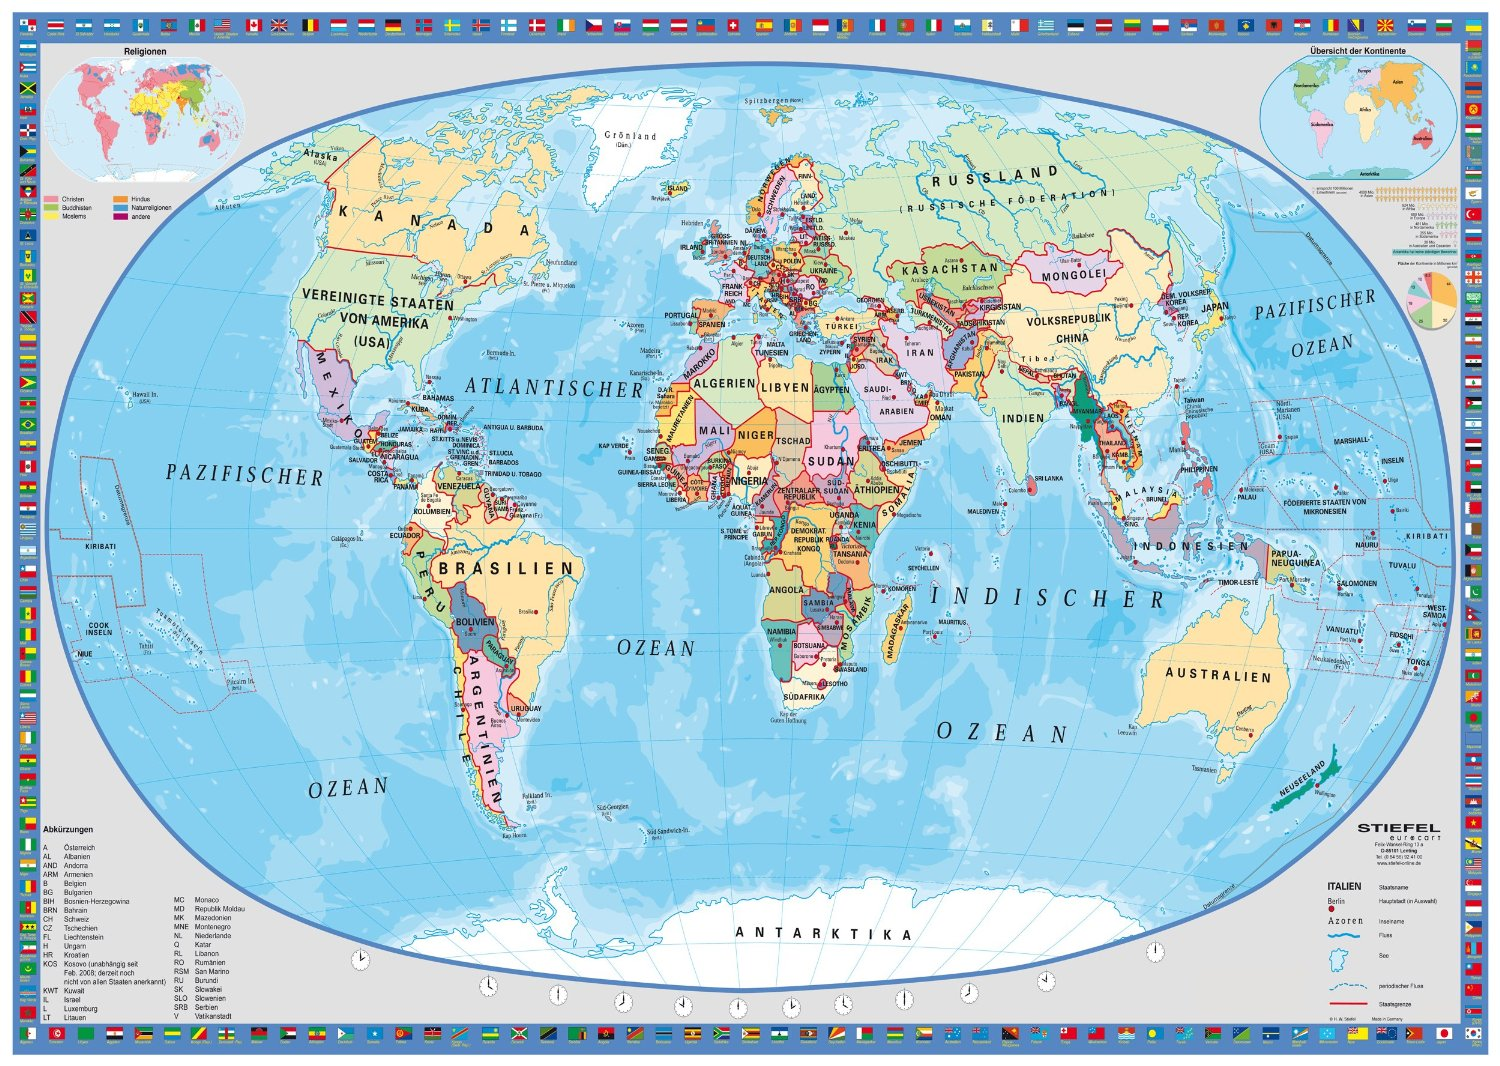 Puzzle political world map schmidt spiele 58186 1000 pieces jigsaw political world map gumiabroncs Image collections